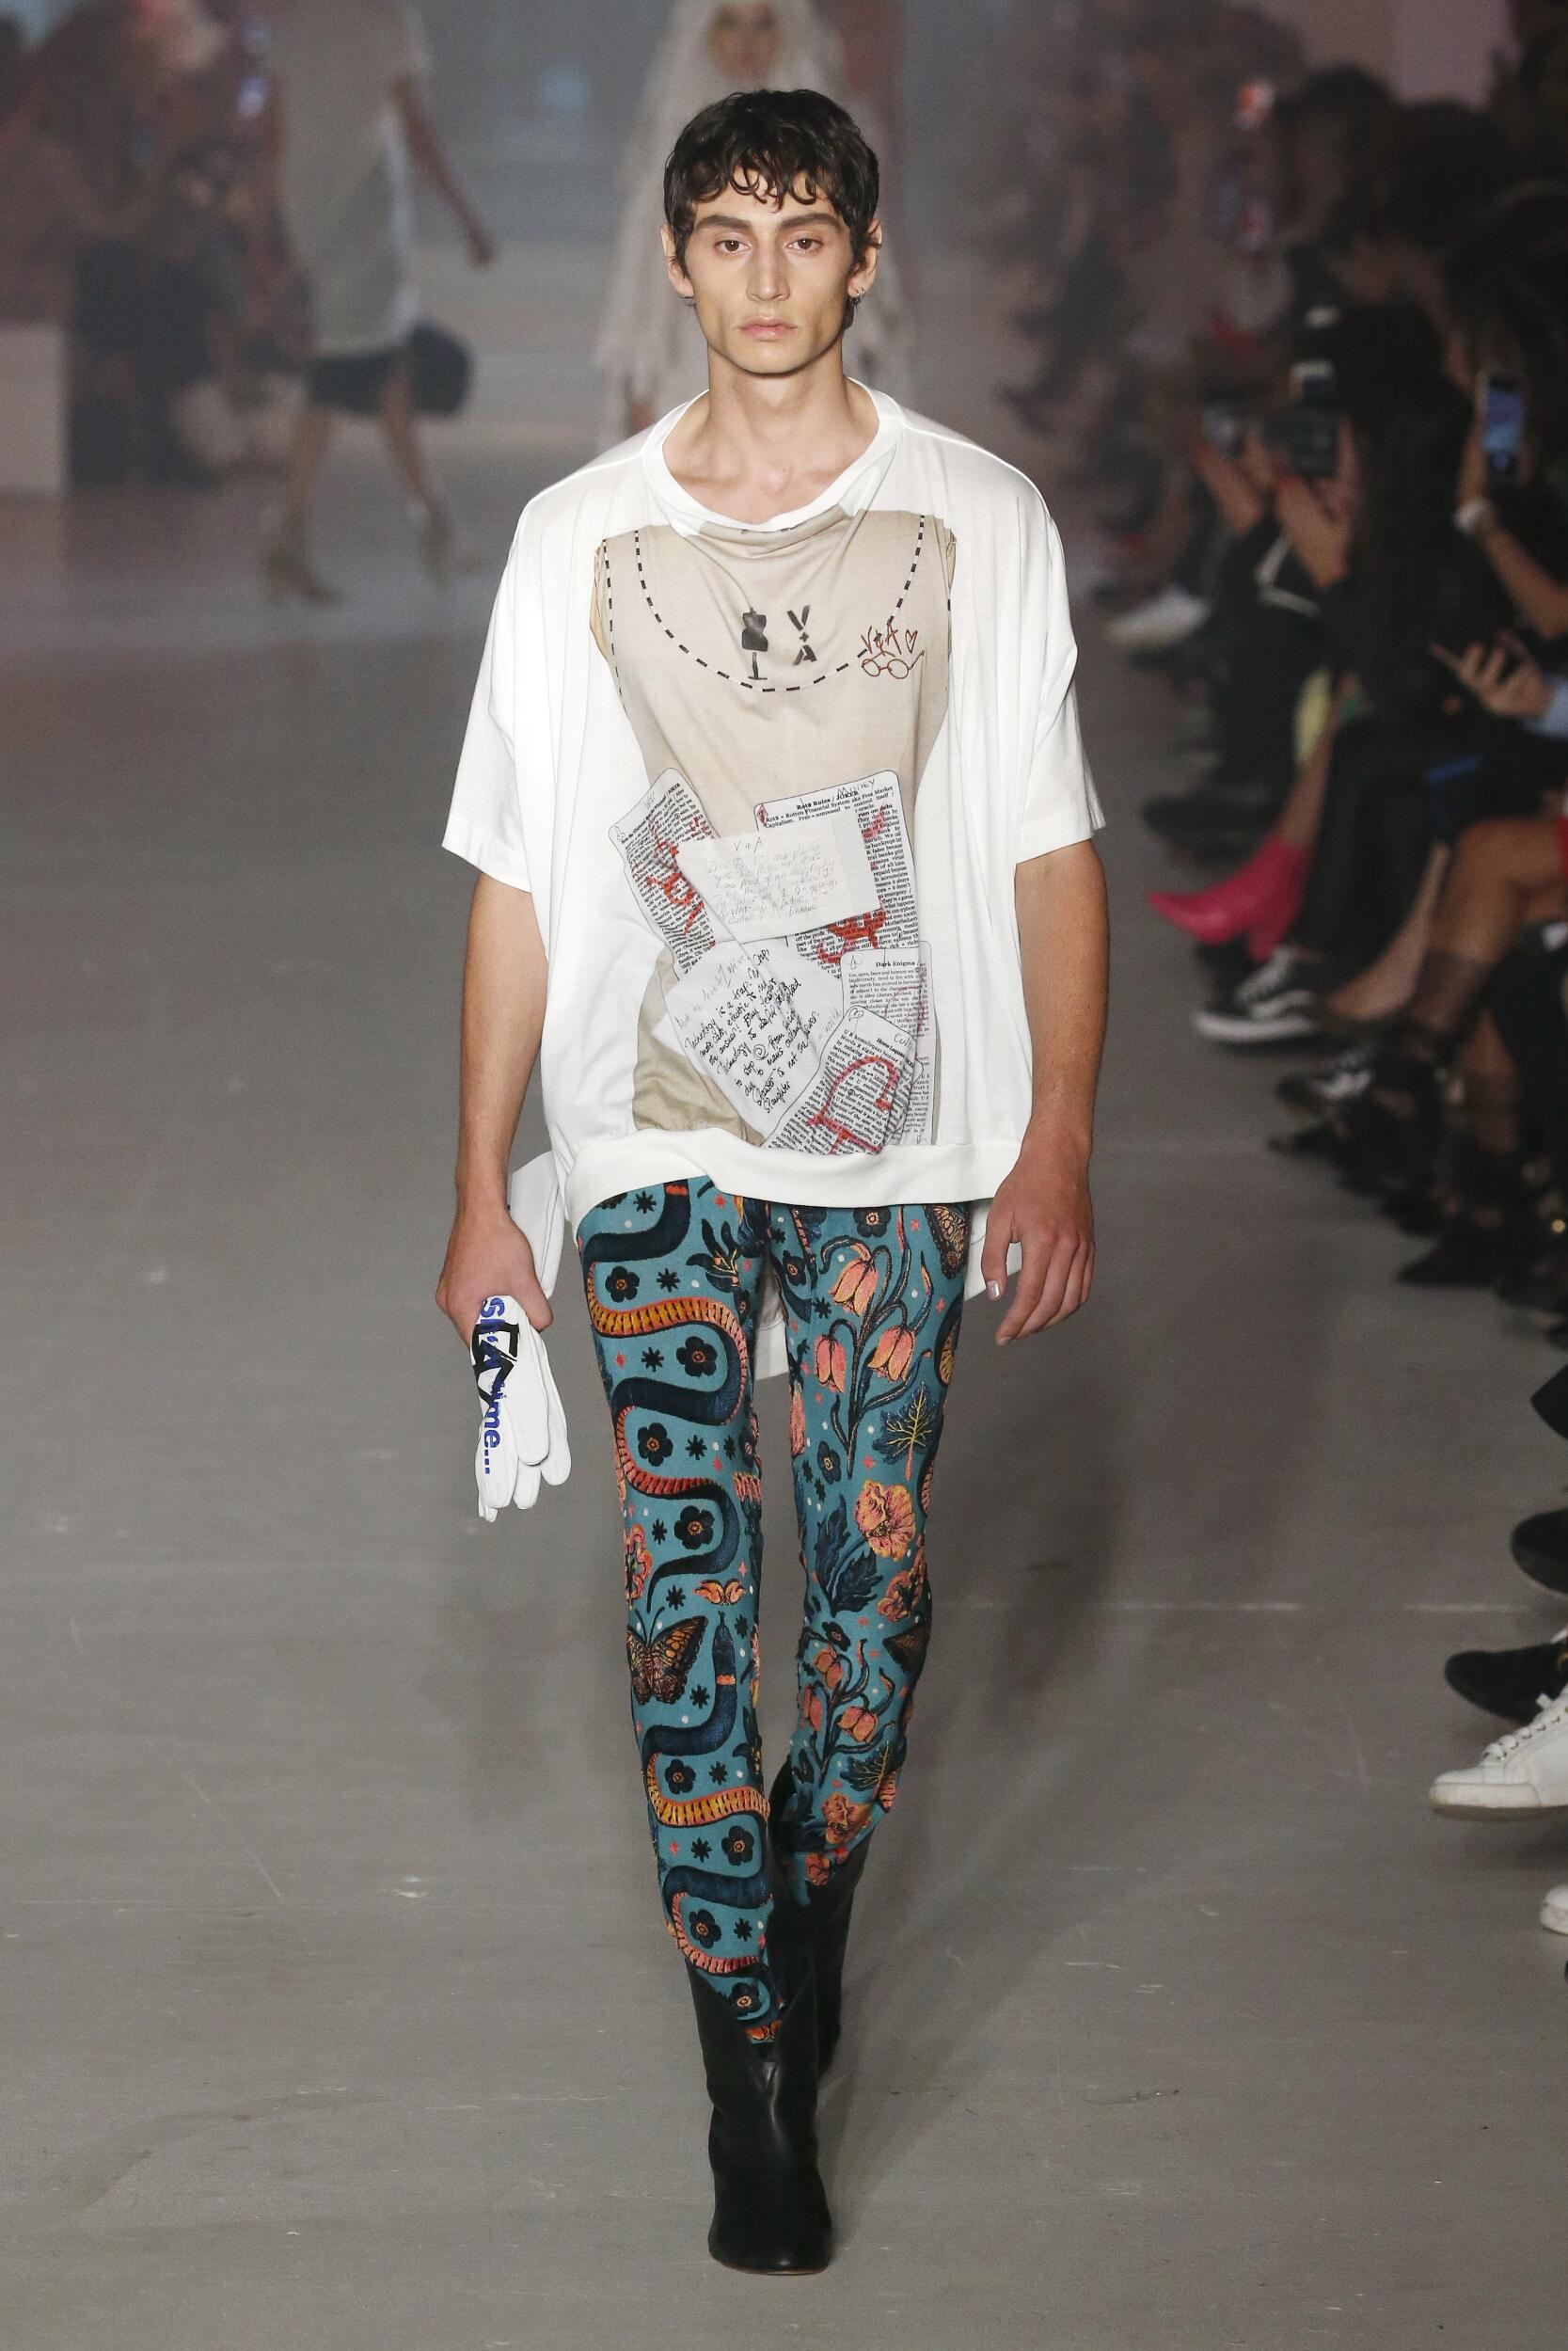 SS 2020 Fashion Show Andreas Kronthaler for Vivienne Westwood